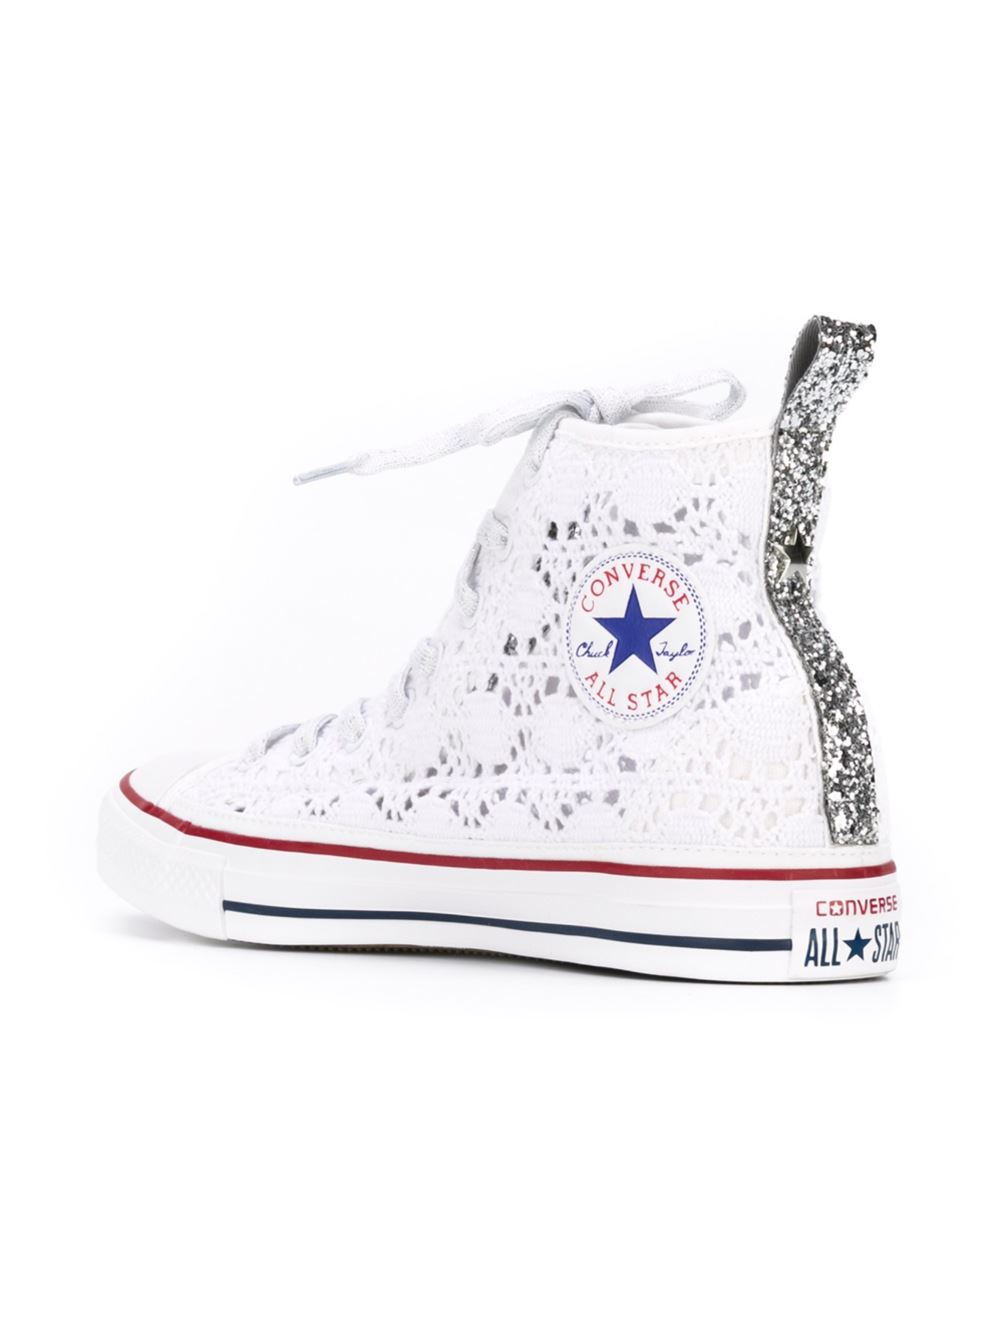 Lyst Converse Lace High Top Sneakers In White For Men